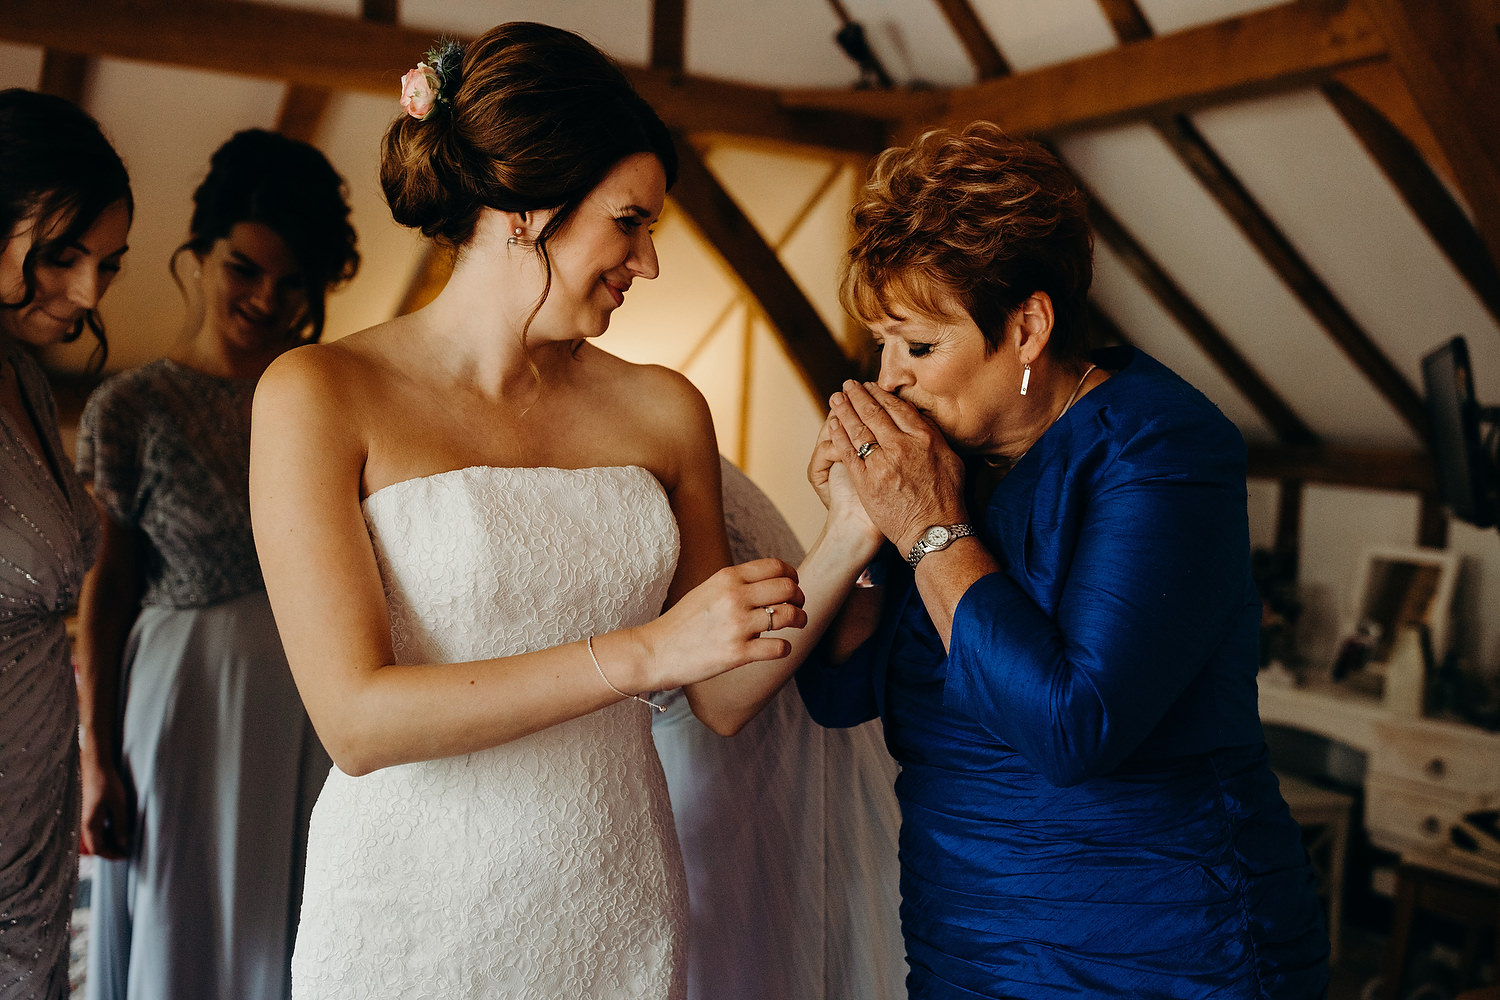 Brides mother kisses daughter on hand